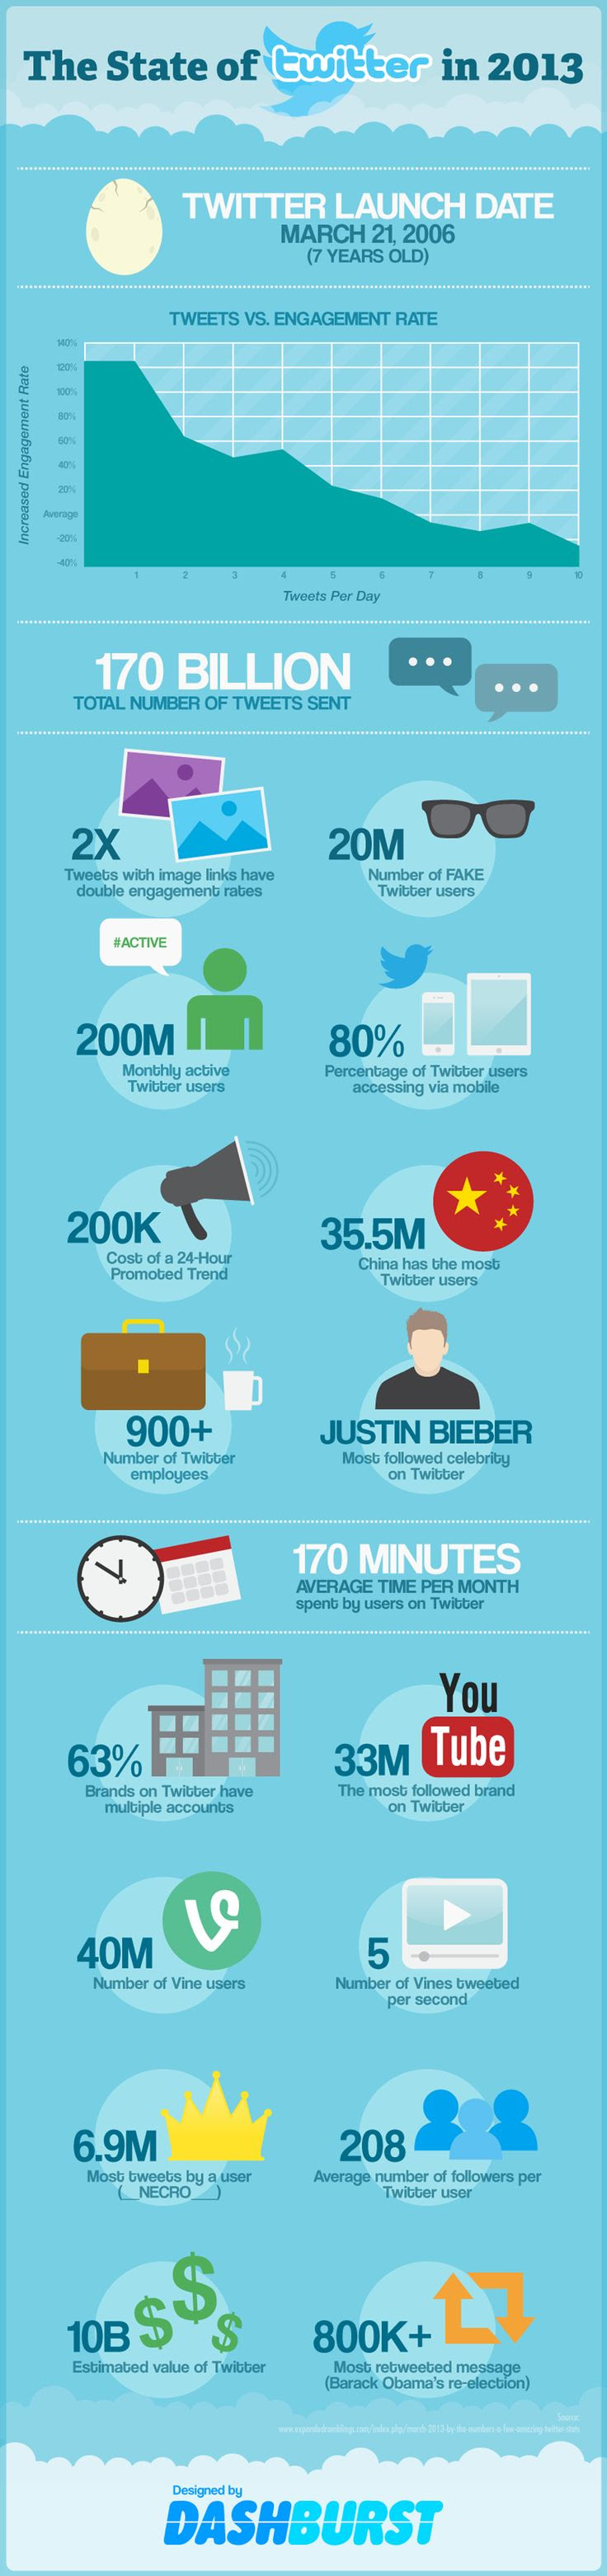 State of twitter 2013 #Infographic